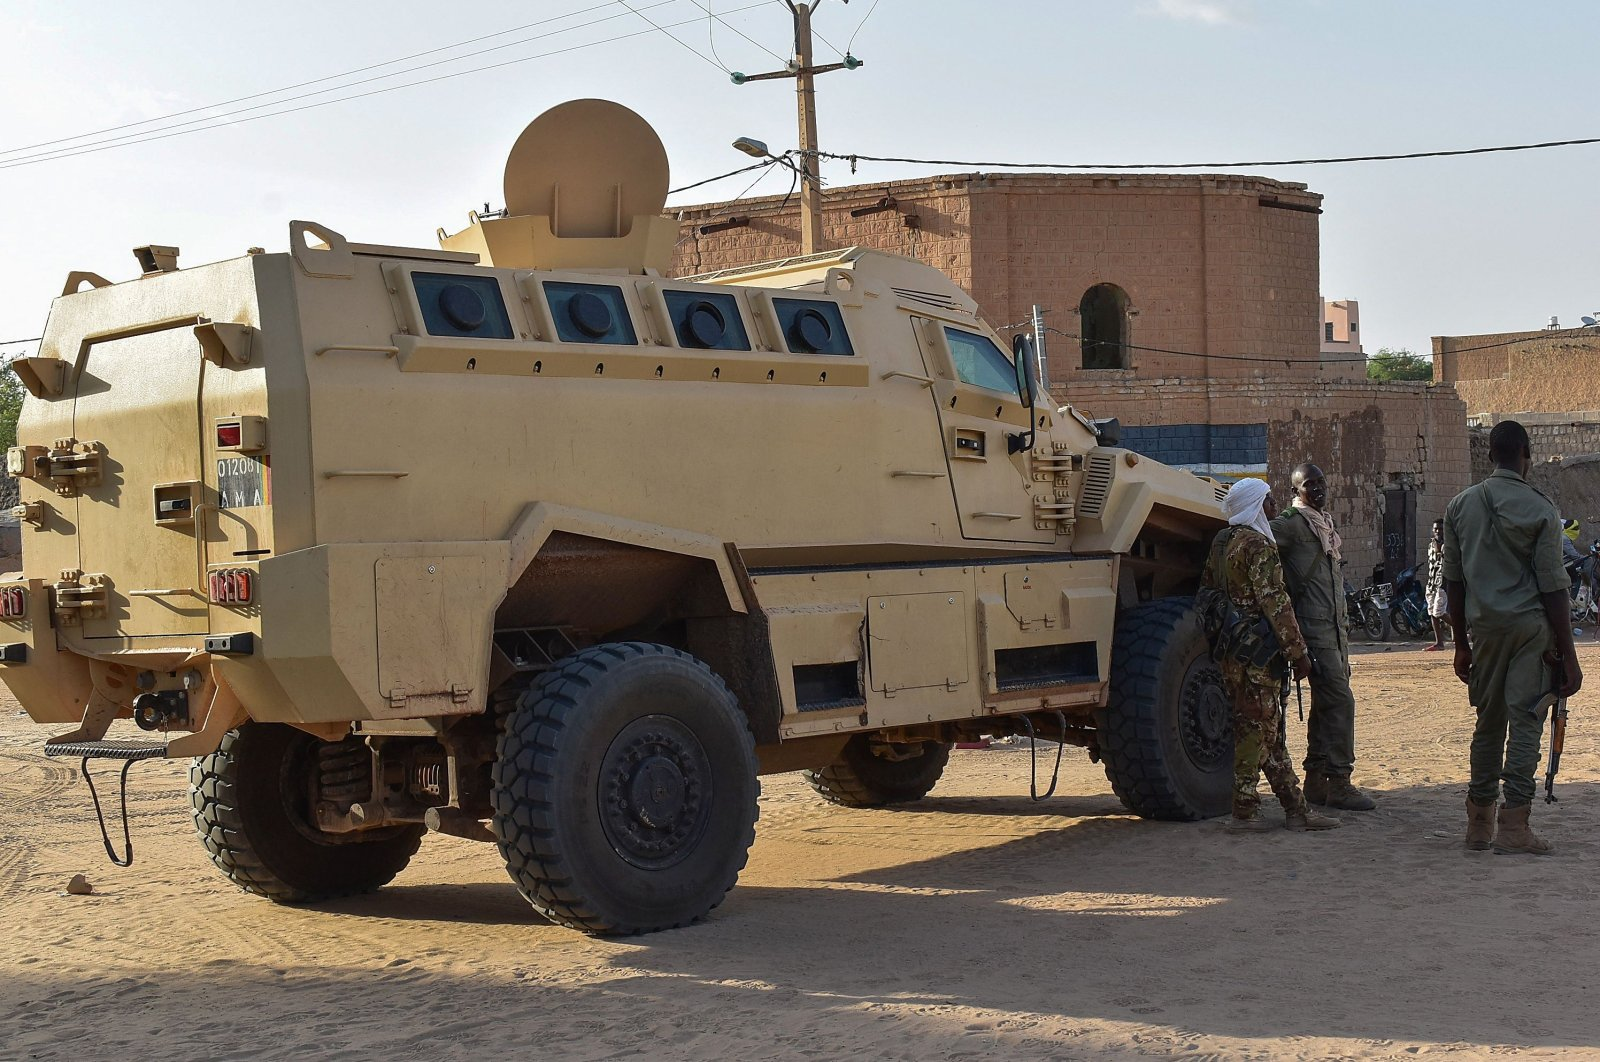 An armored personnel carrier of the Malian Armed Forces is seen in Timbuktu, Mali, Sept. 9, 2021. (AFP Photo)